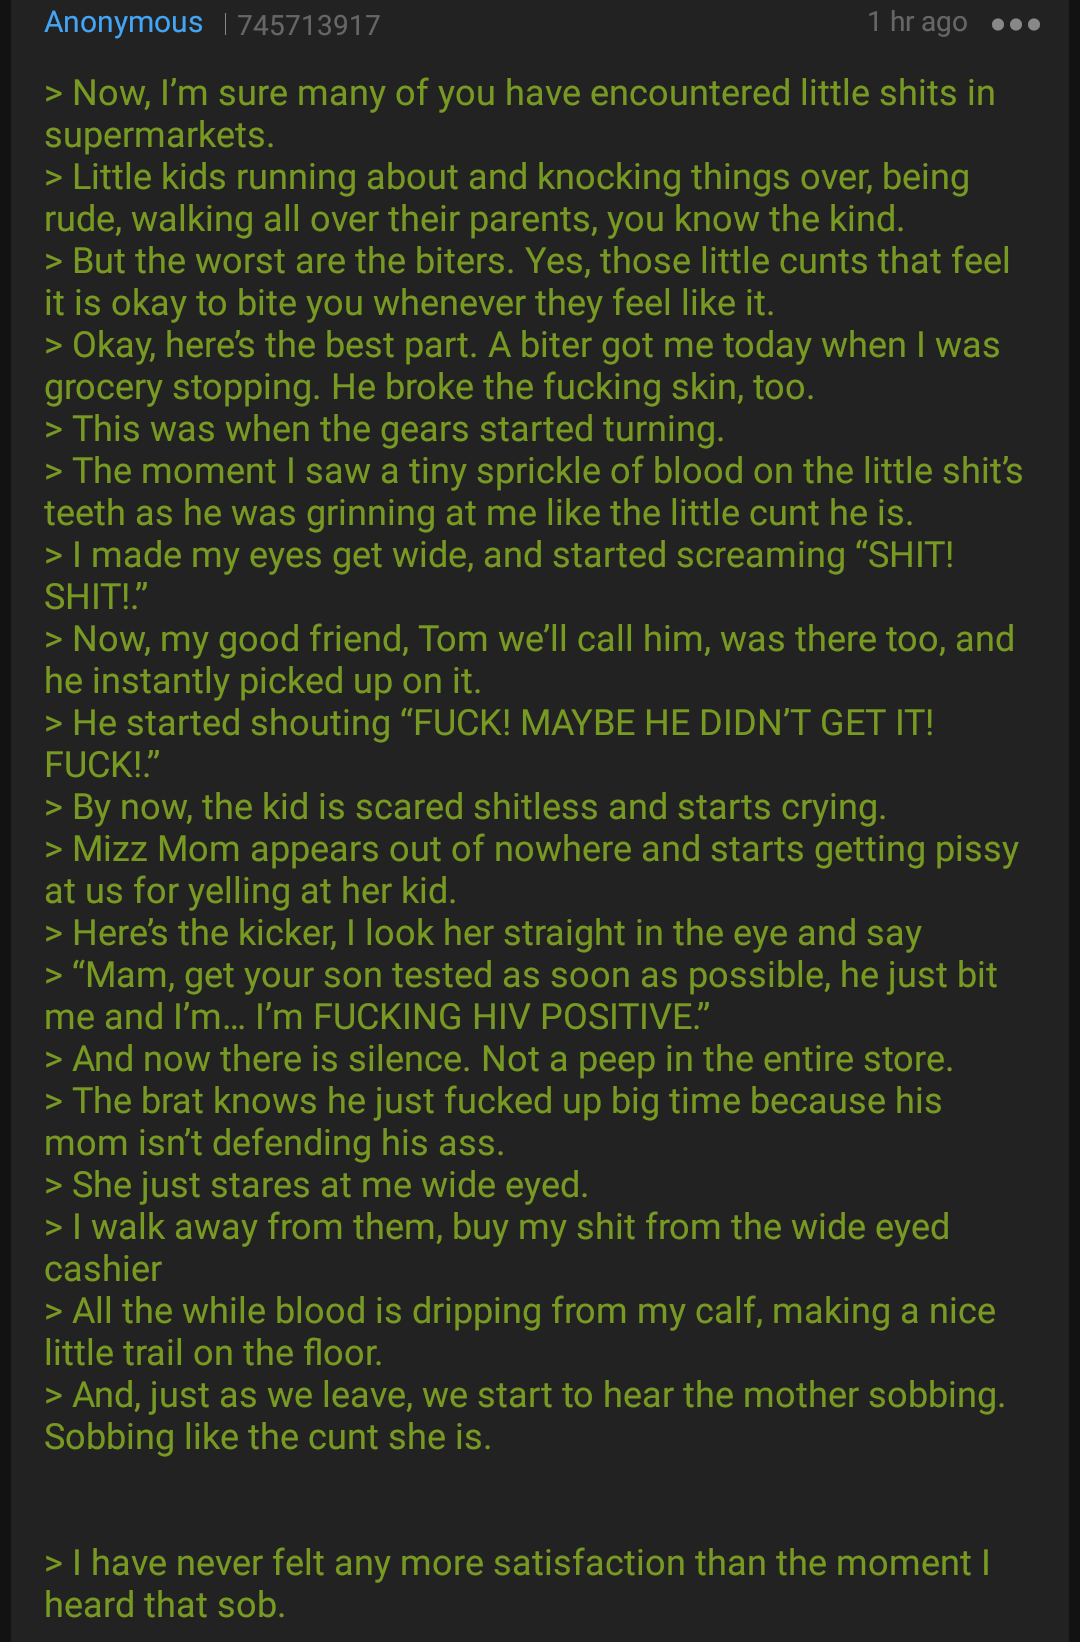 Anon is a hero